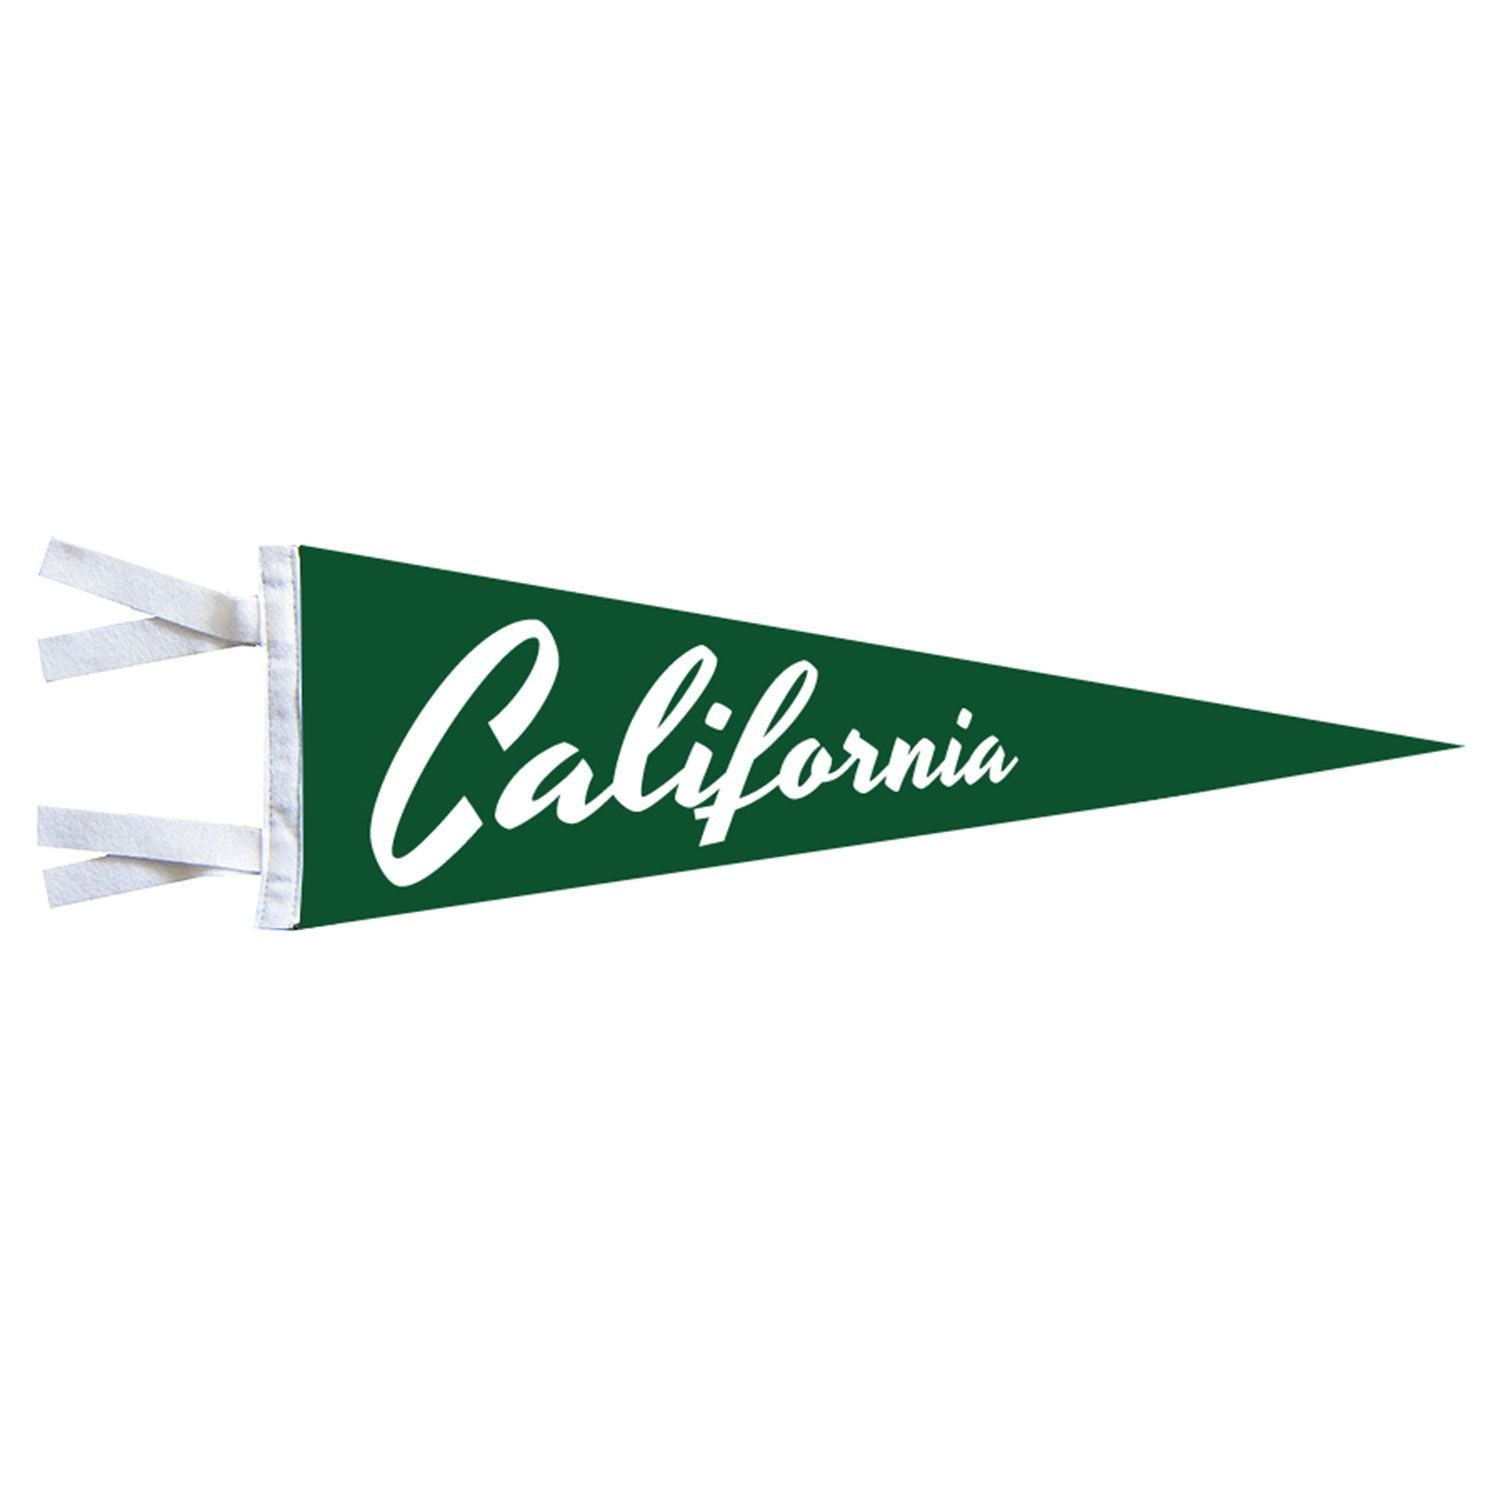 California Pennant - Green